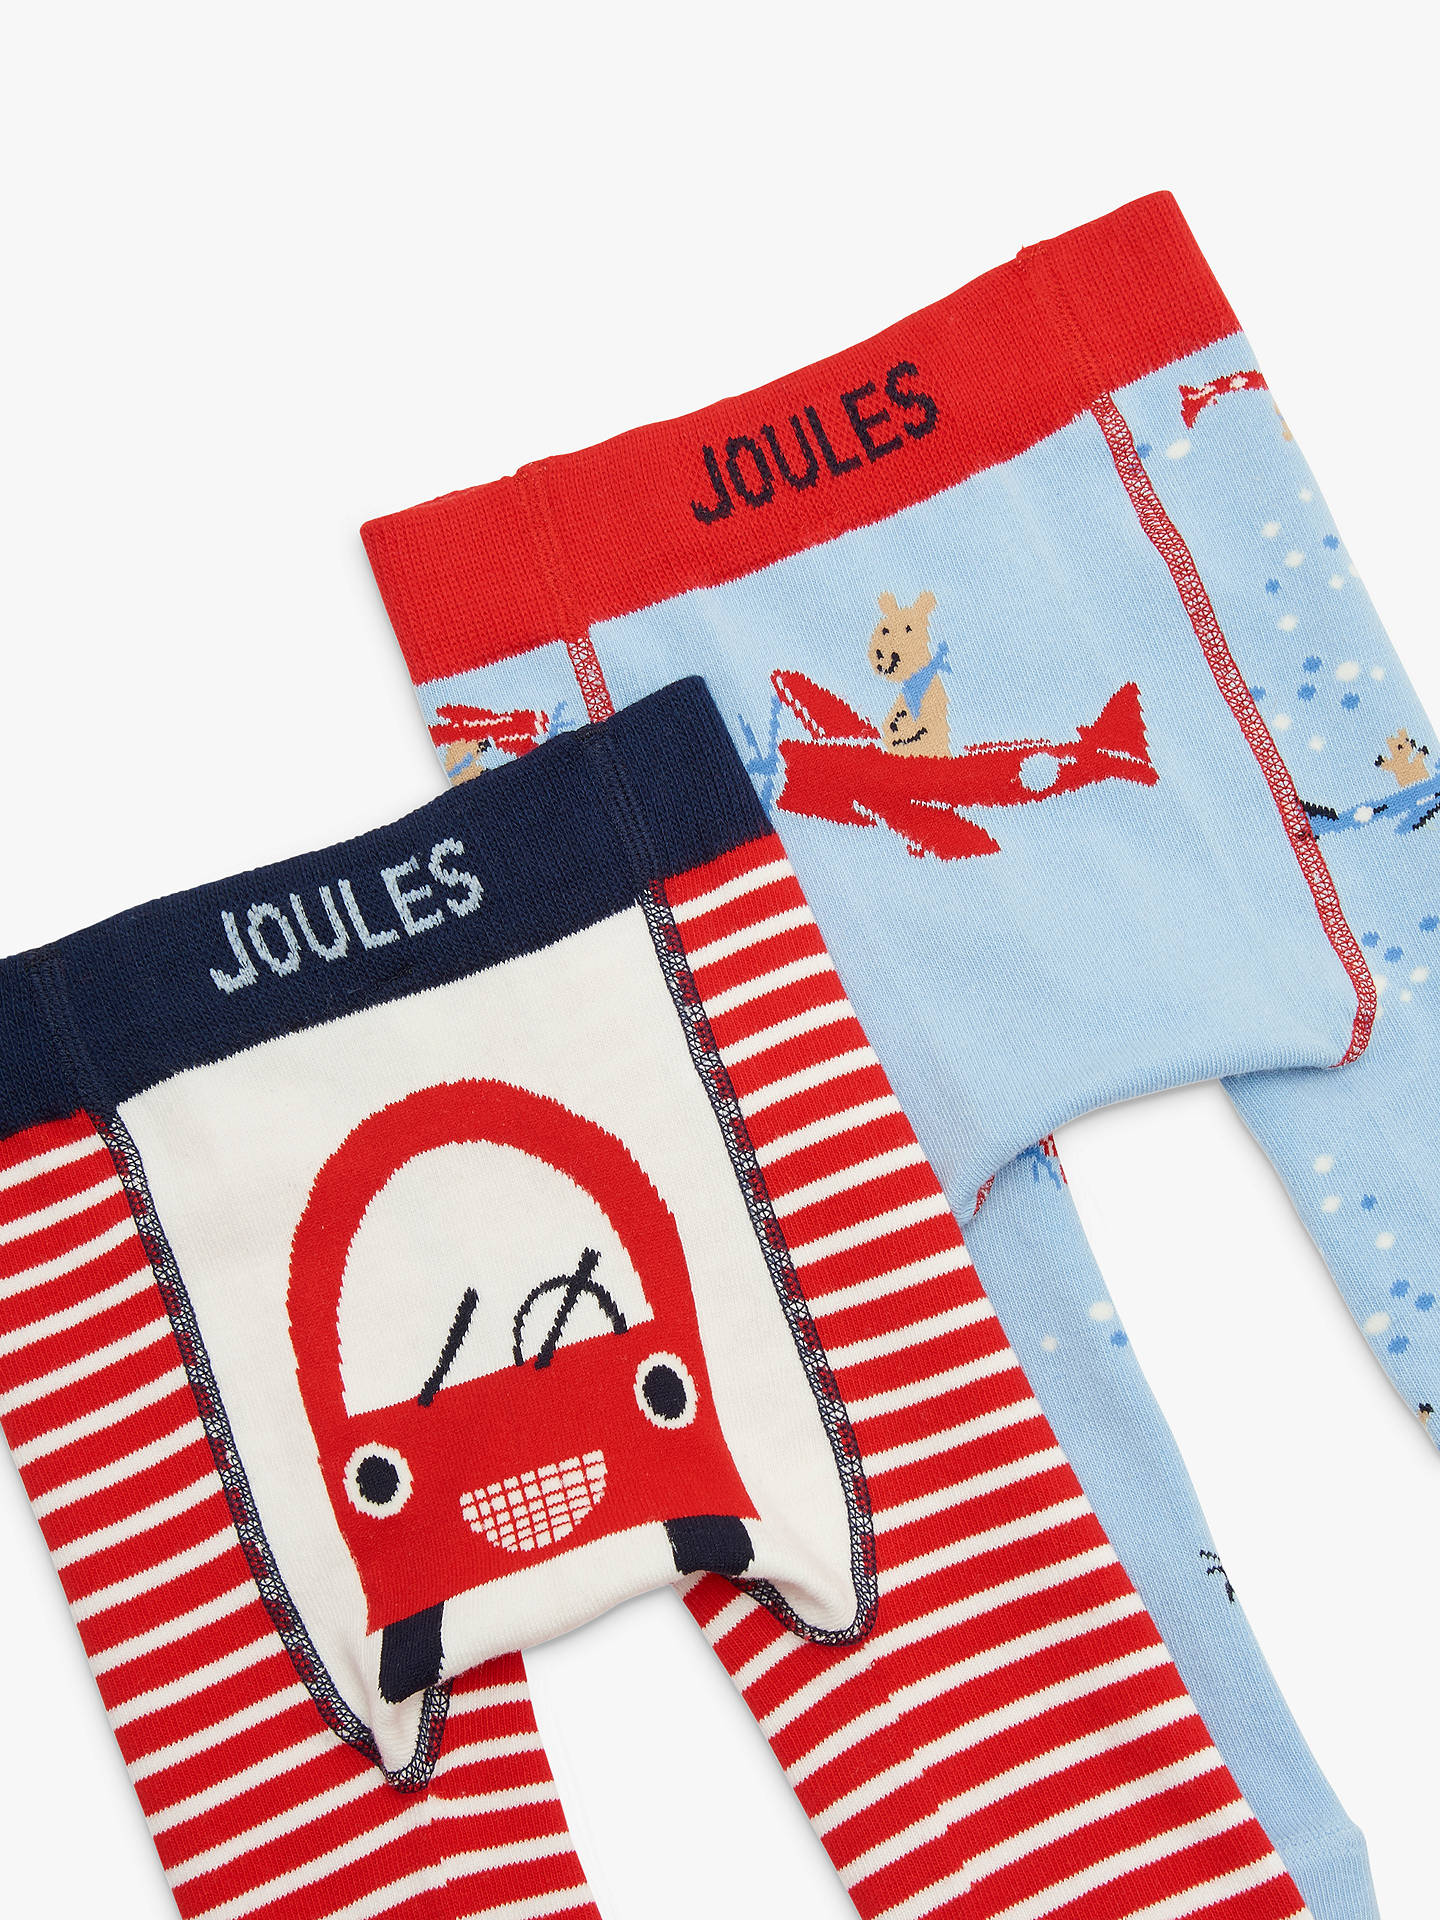 BuyBaby Joule Lively Legs Car Leggings, Pack of 2, Red/Multi, 0-6 months Online at johnlewis.com